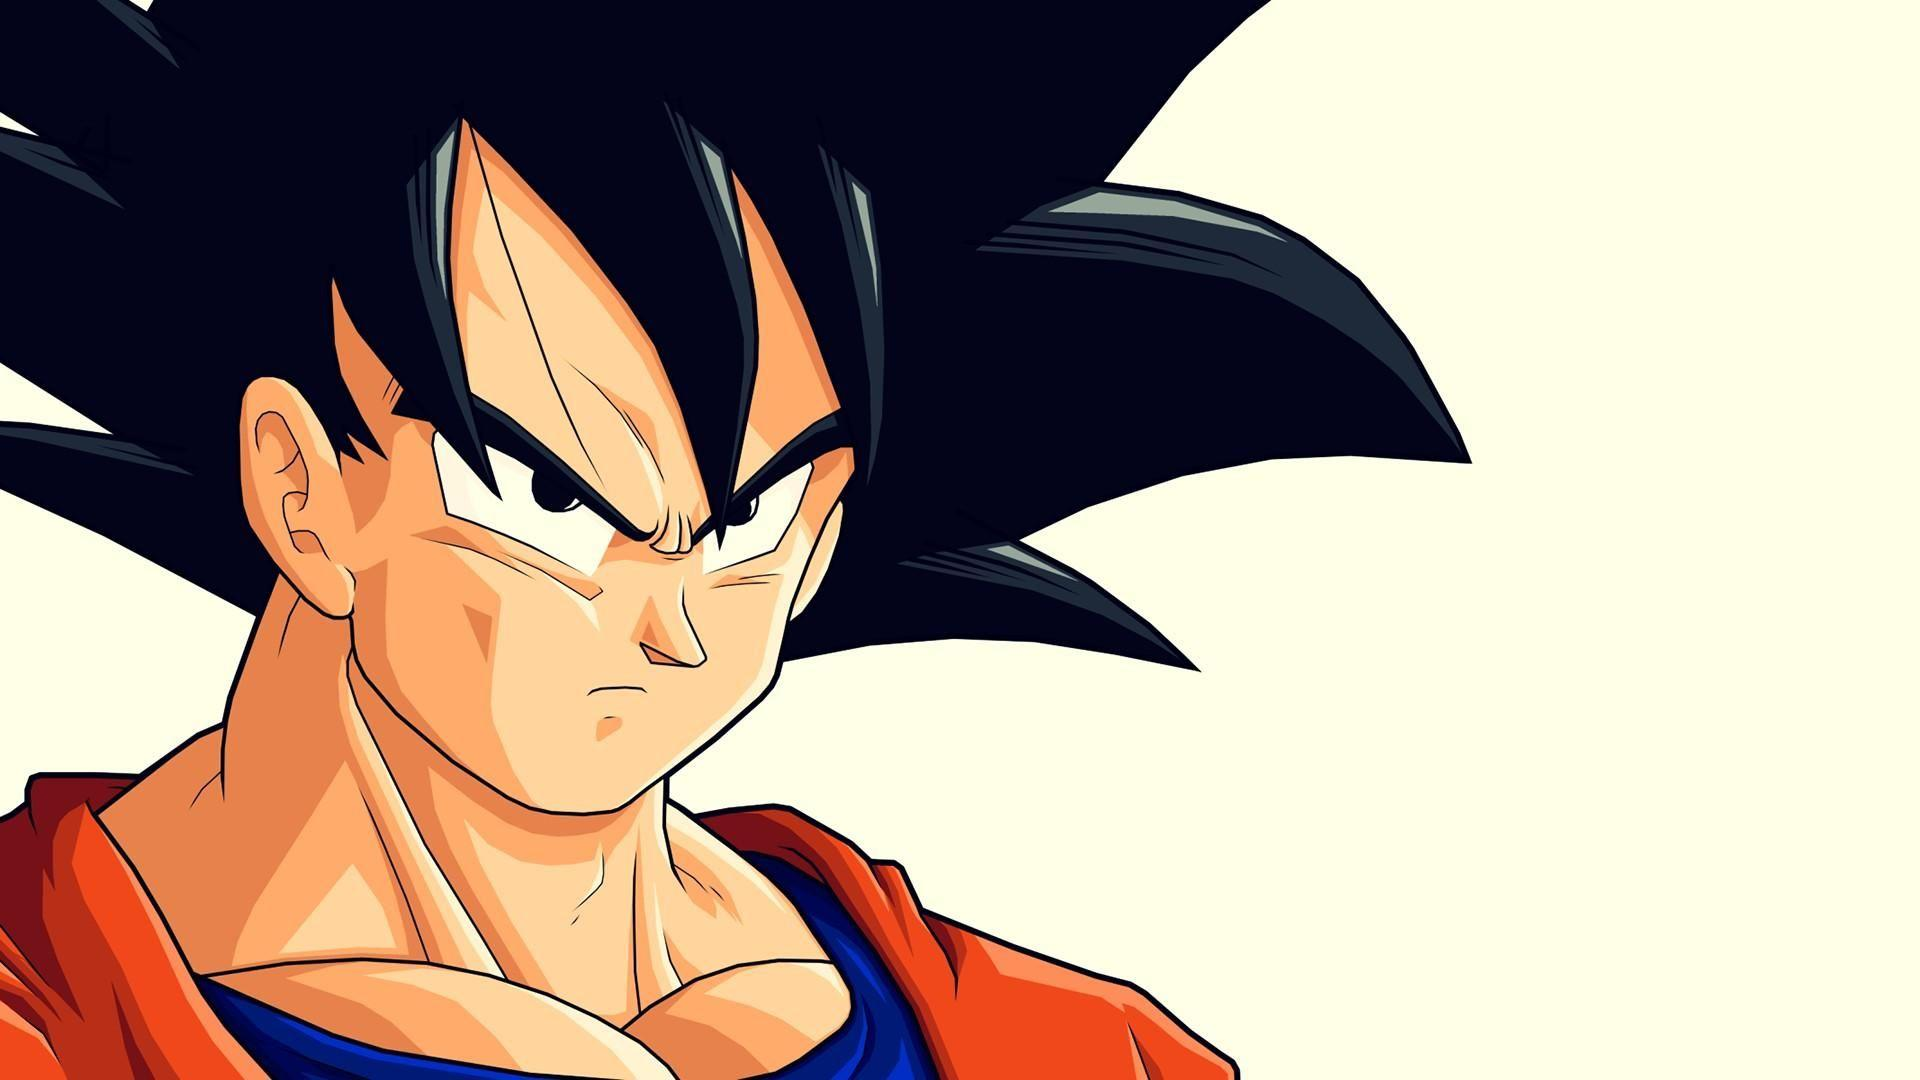 Son-Goku Wallpapers - Wallpaper Cave